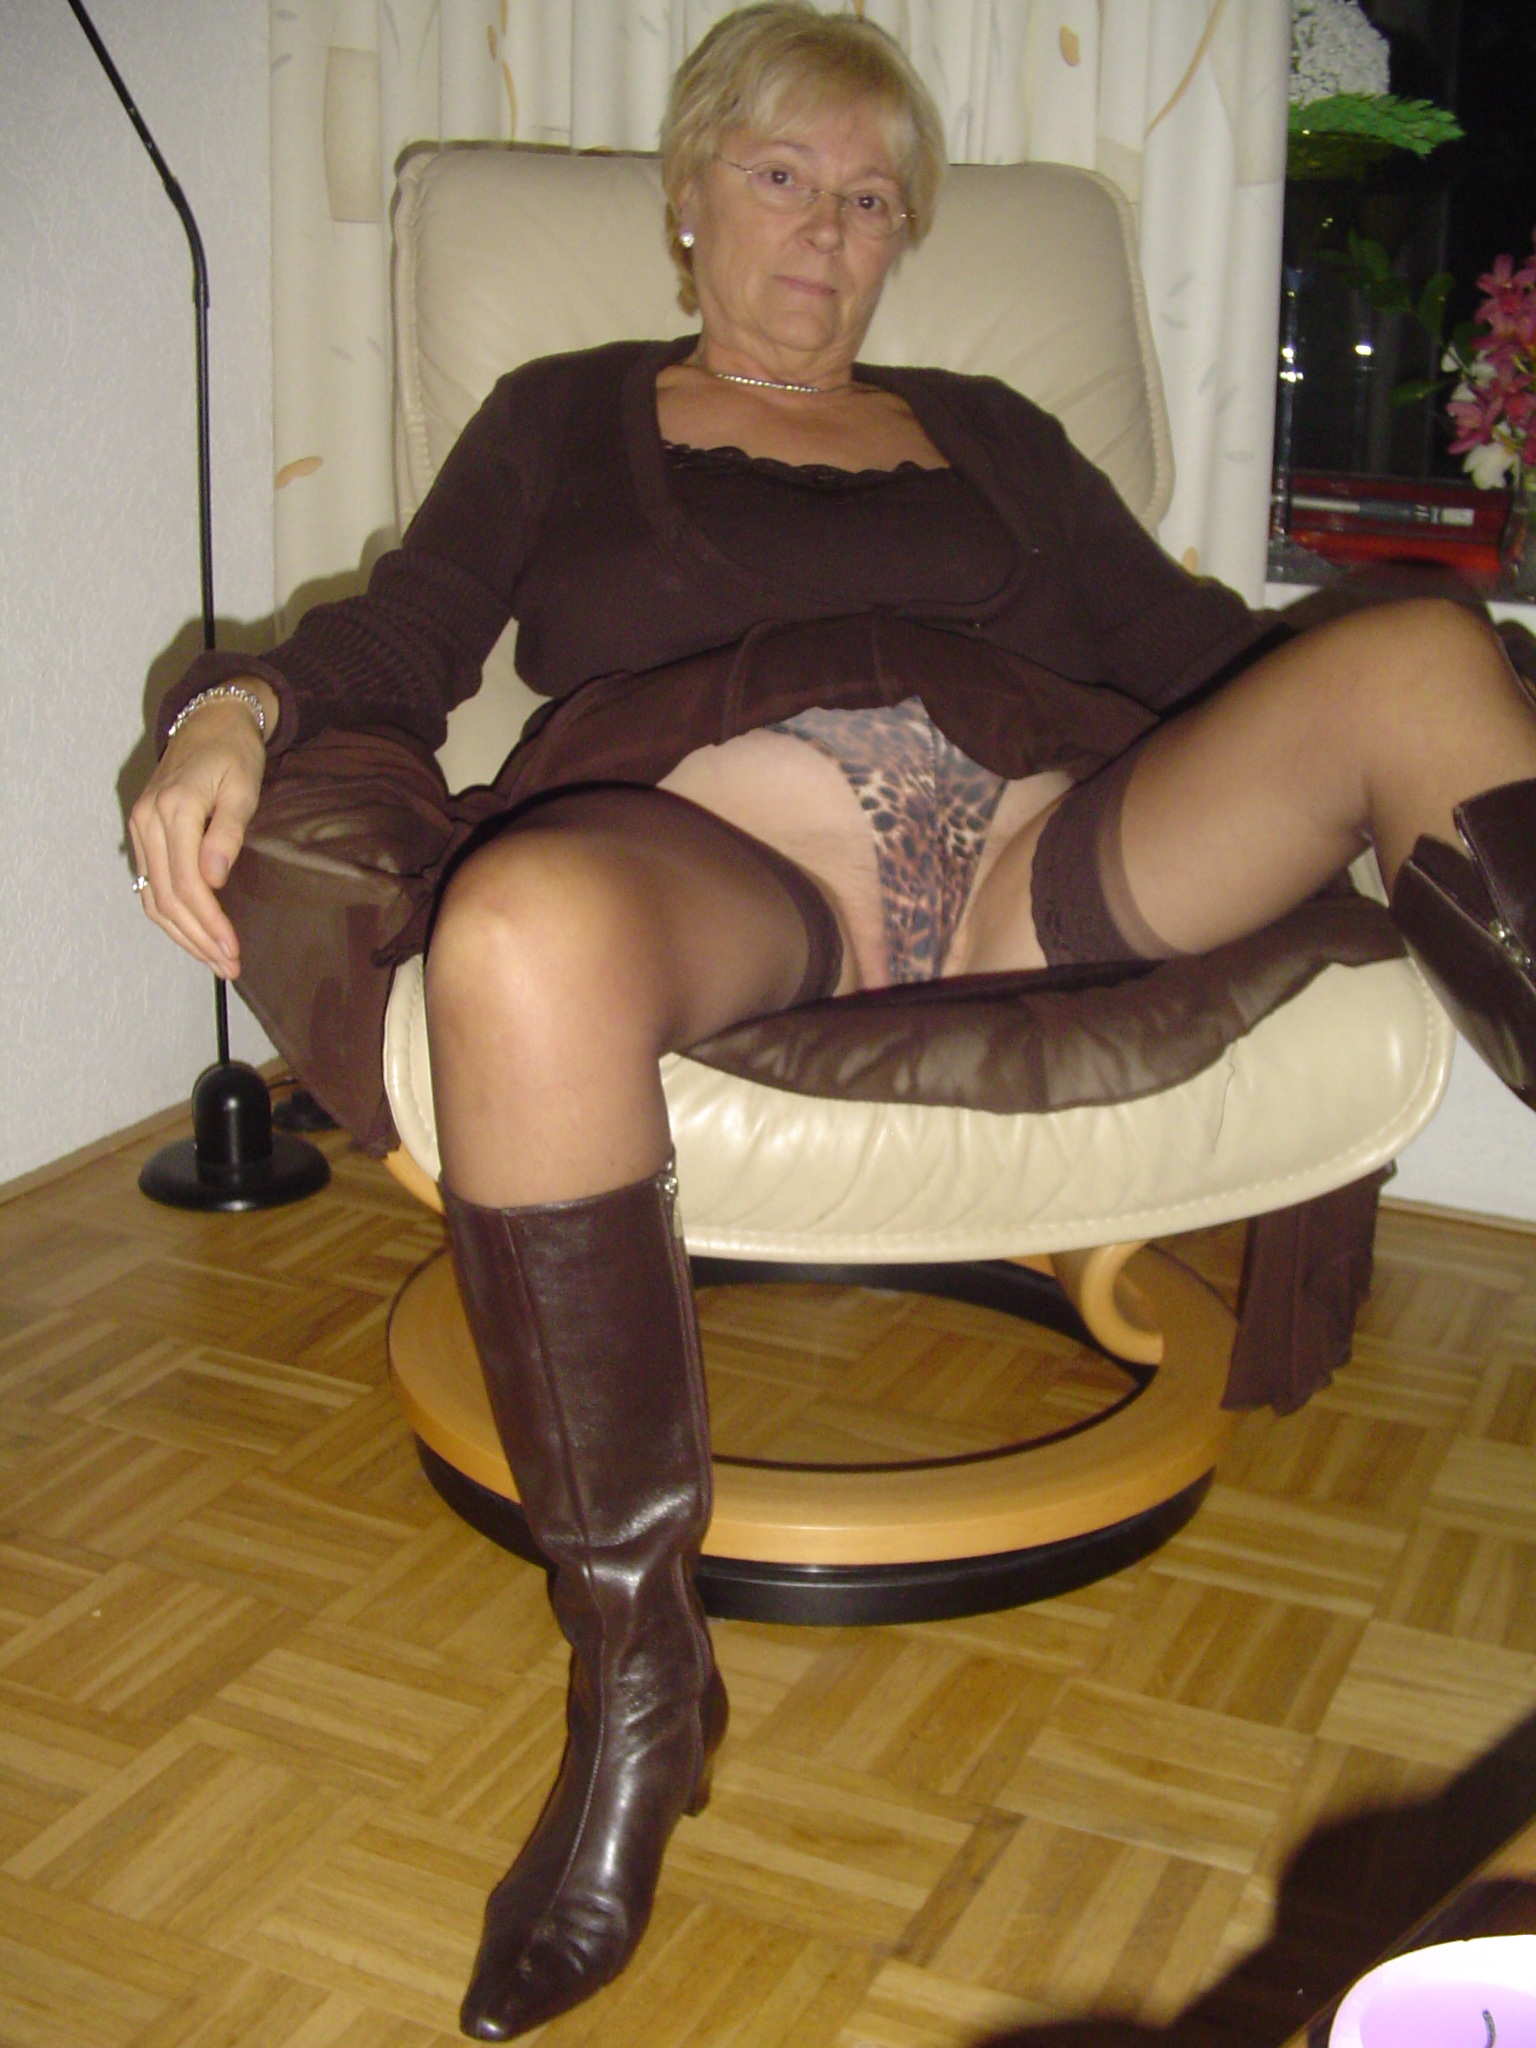 Milf hot sexy topic has